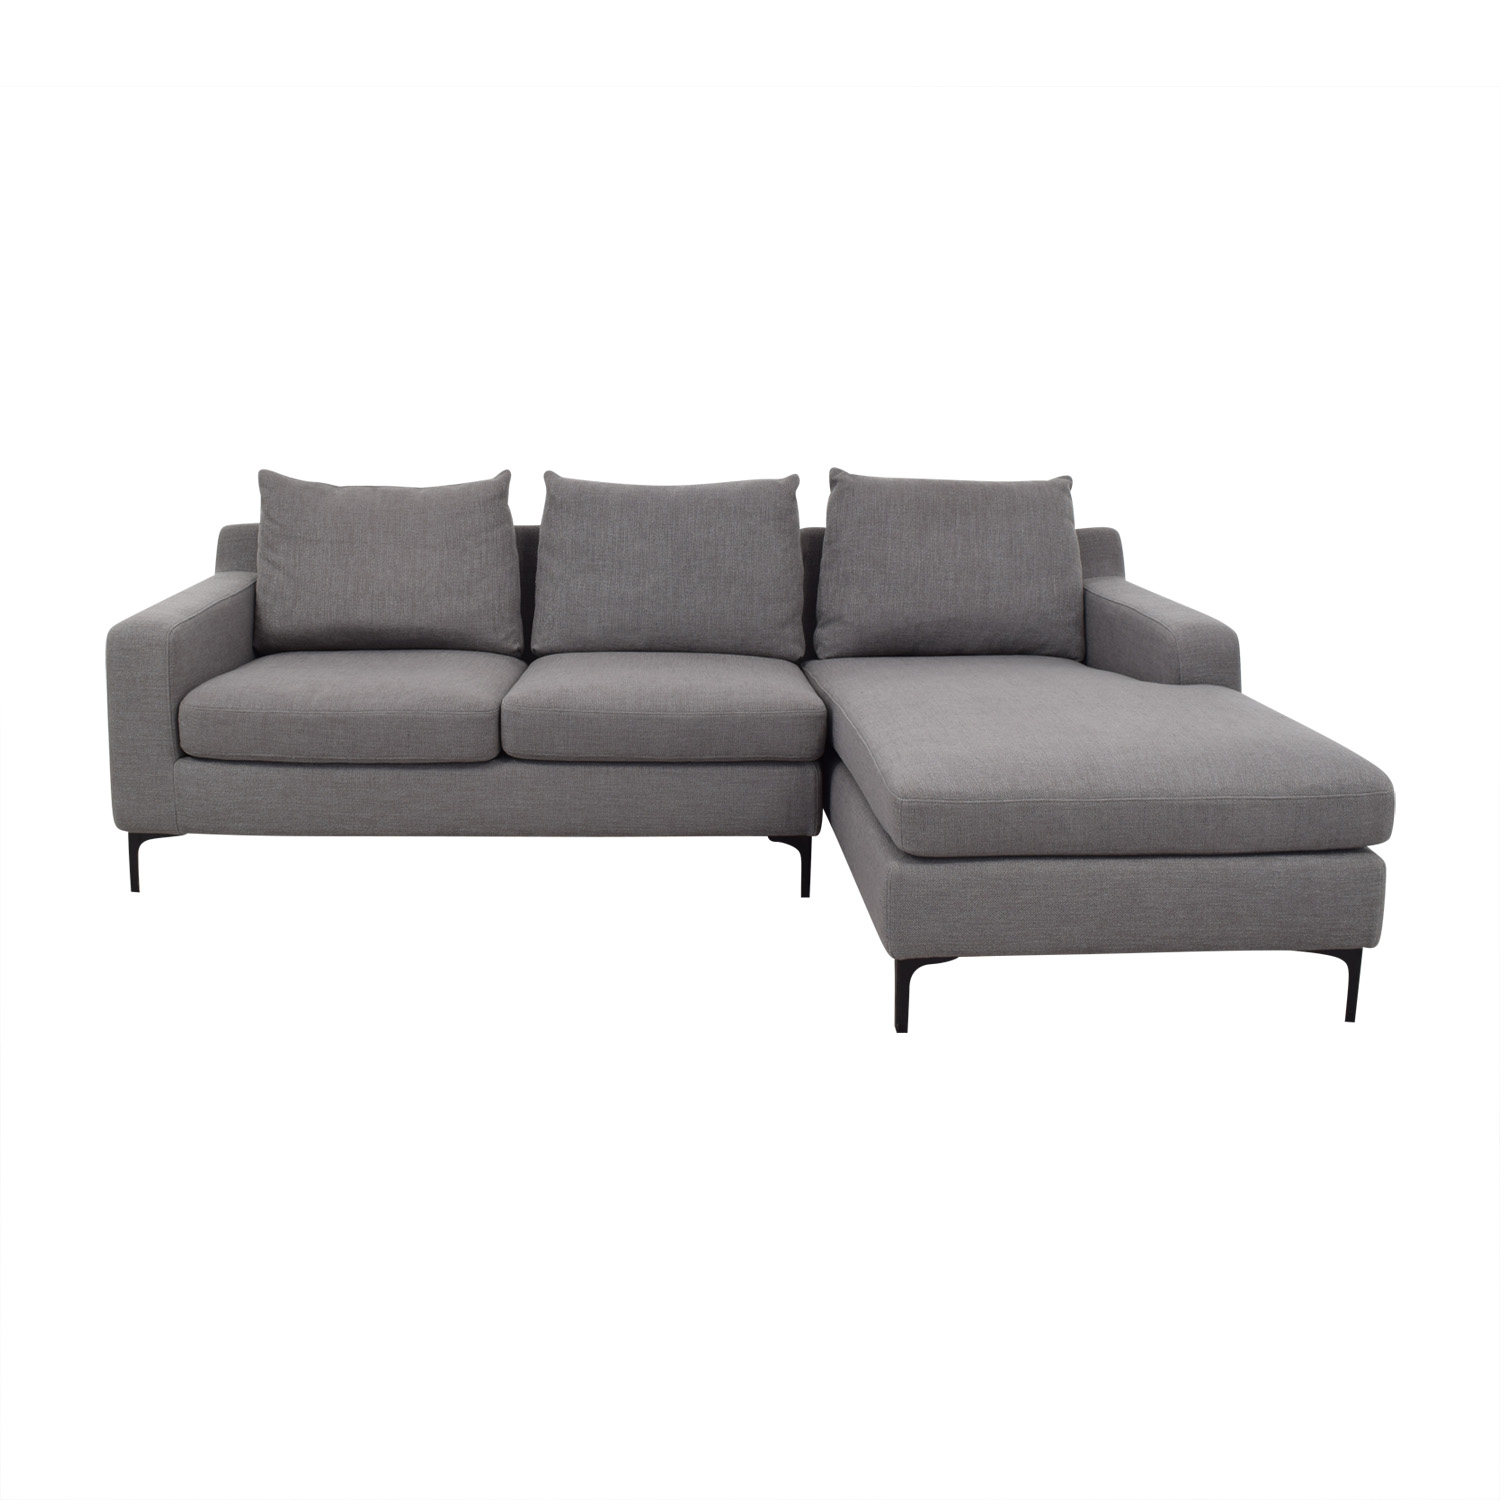 Interior Define Sloan Sectional Sofa Left Chaise Sectionals